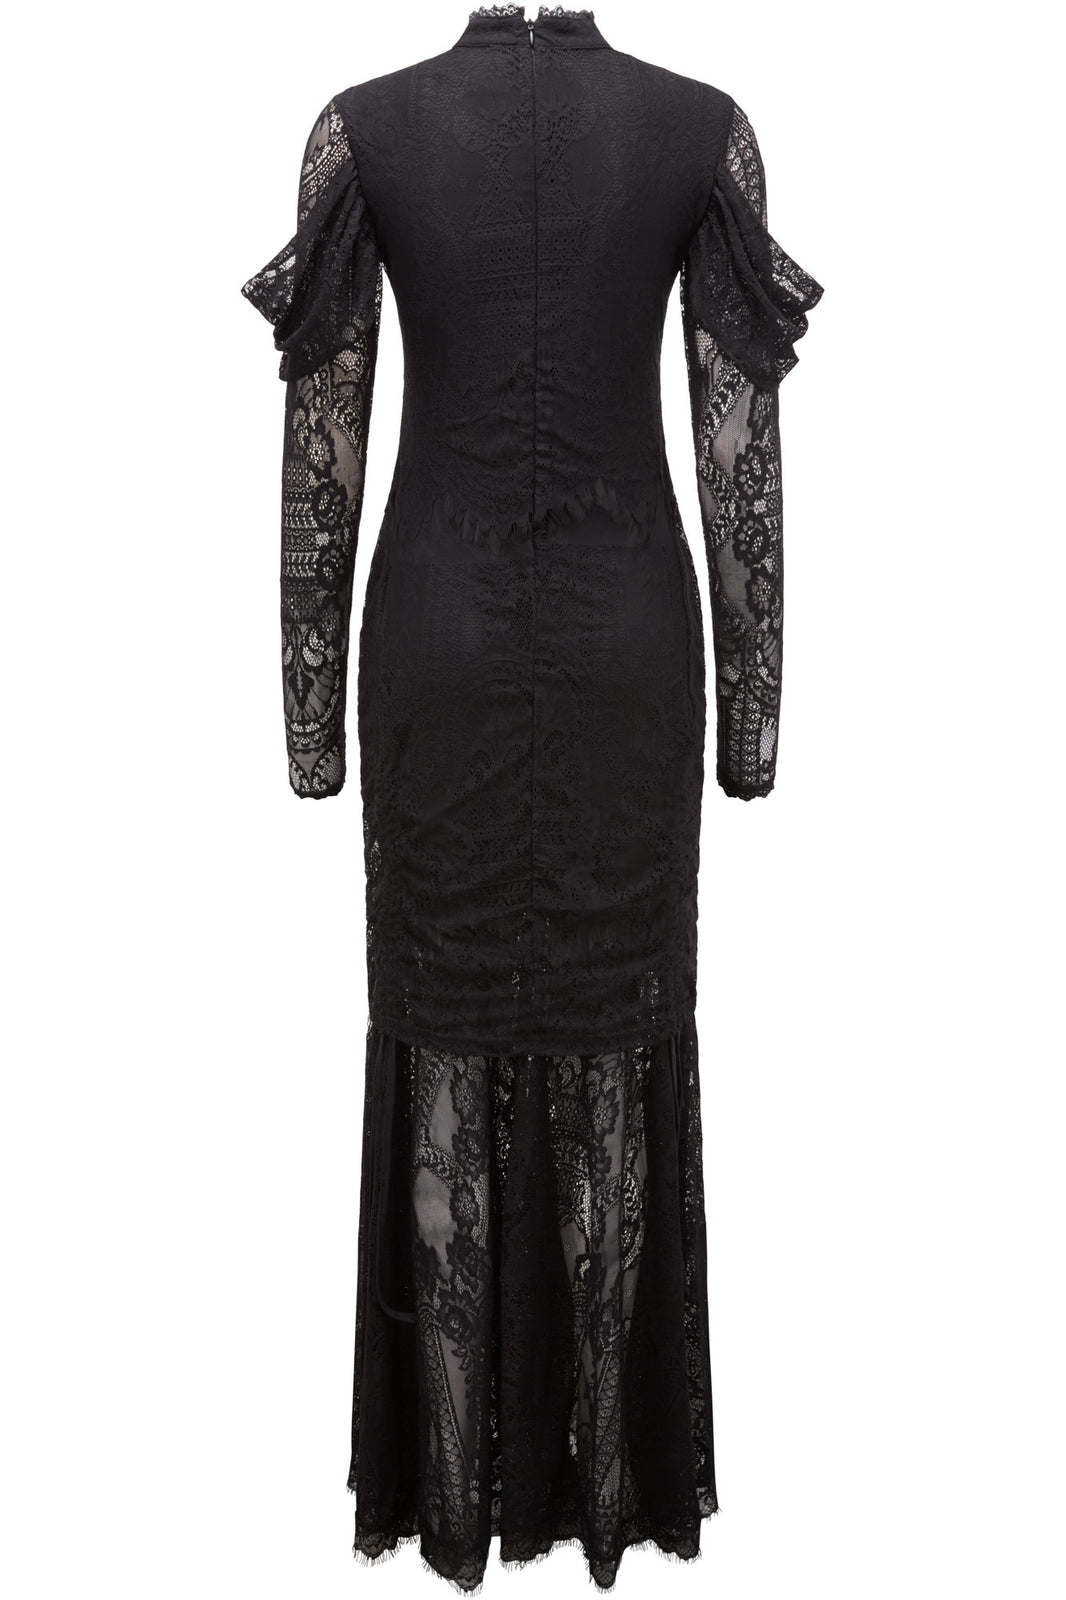 Morte Mistress Maxi Dress [B]